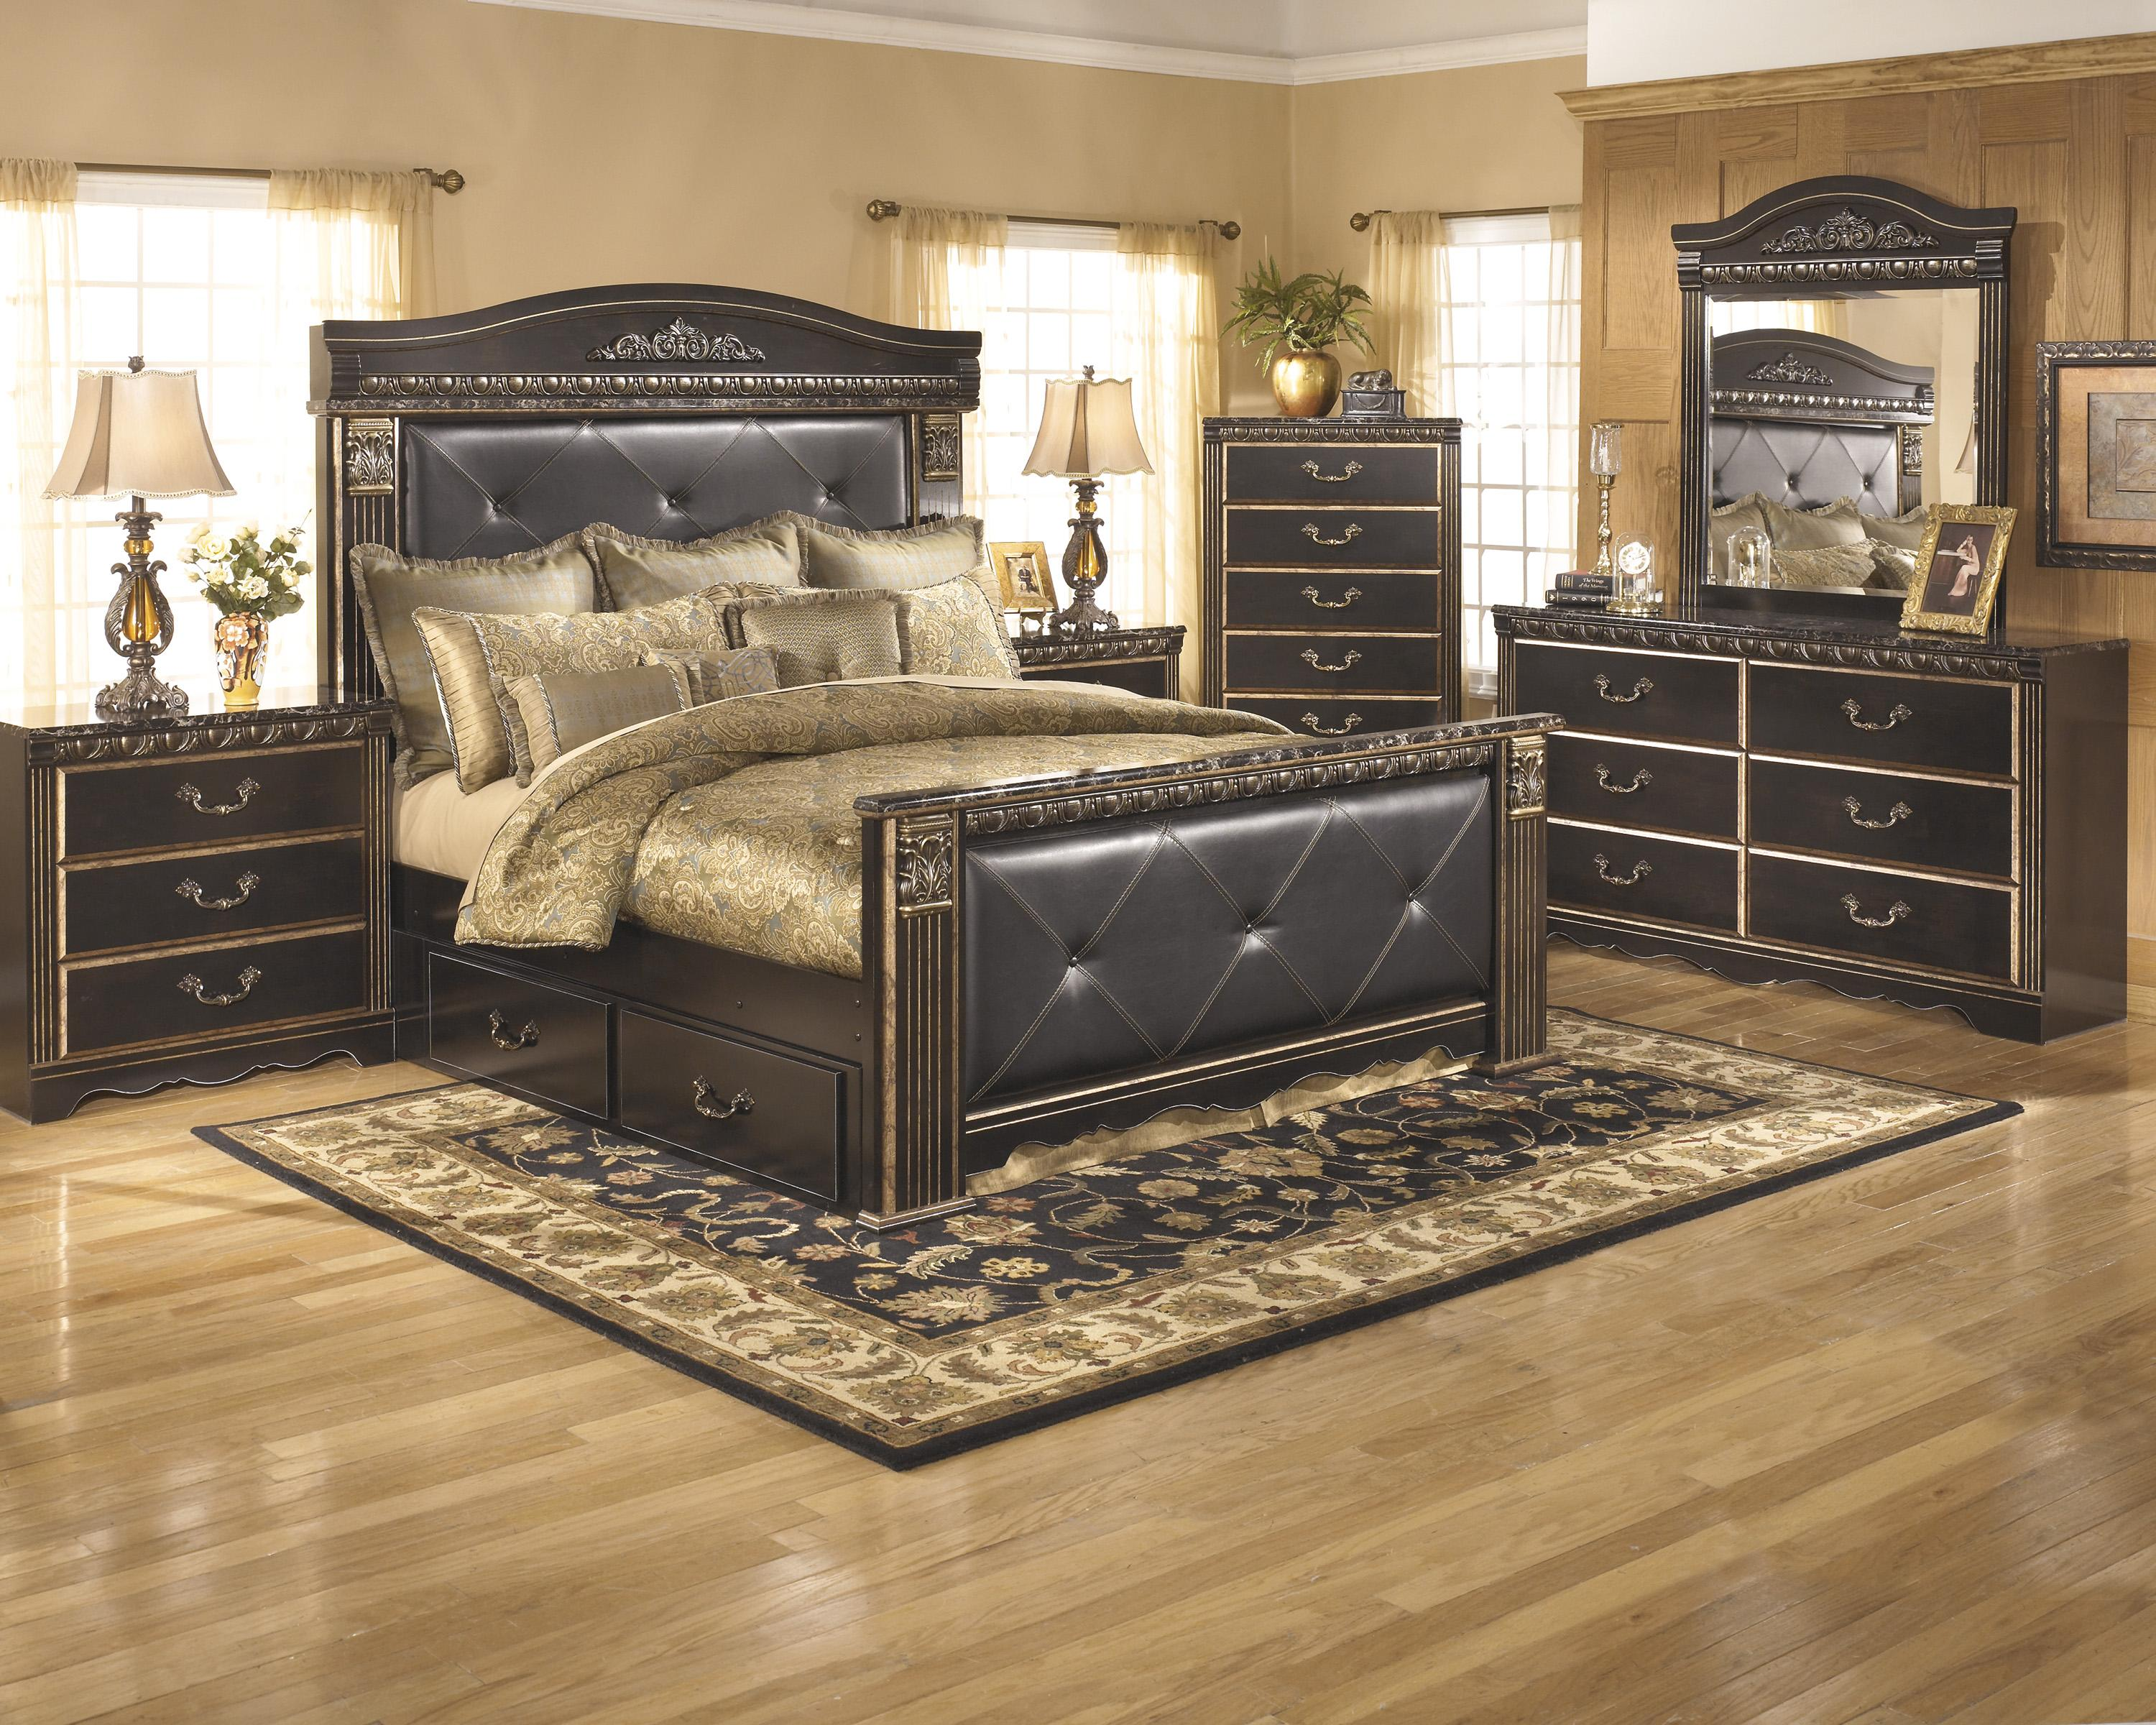 Signature Design by Ashley Coal Creek King Bedroom Group - Item Number: B175 K Bedroom Group 2